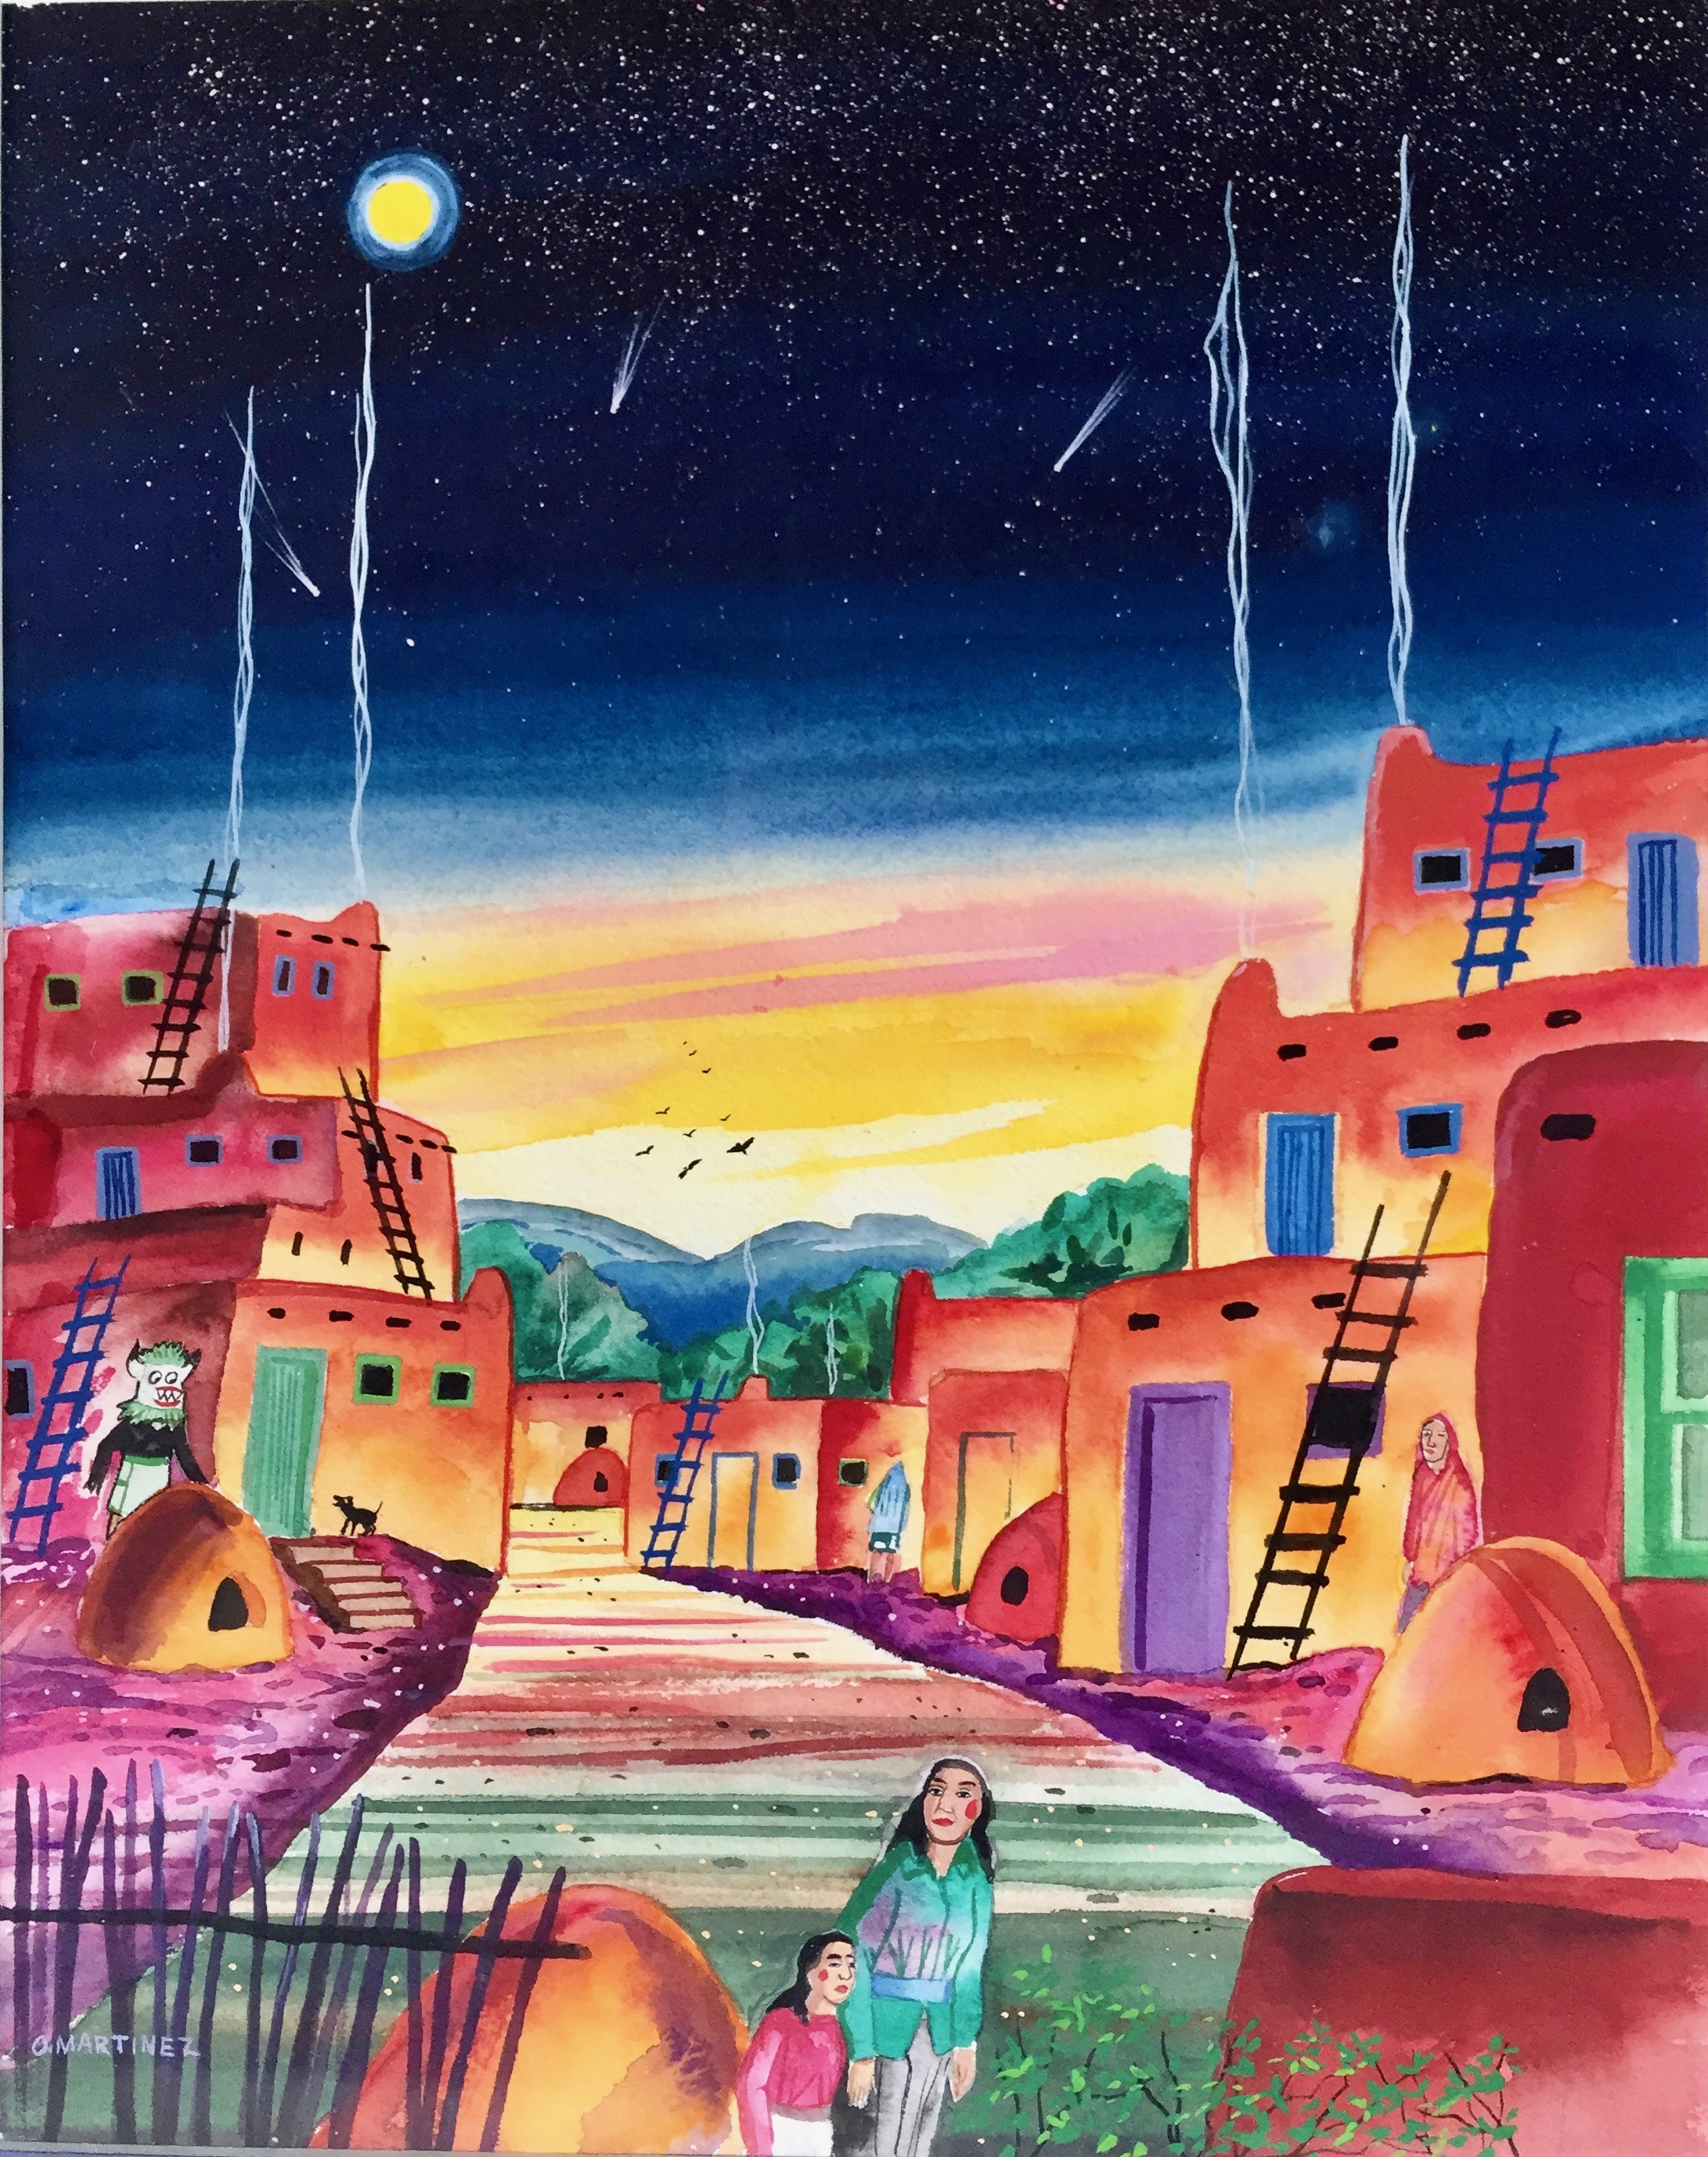 Watercolor of a New Mexico pueblo by O. Martinez